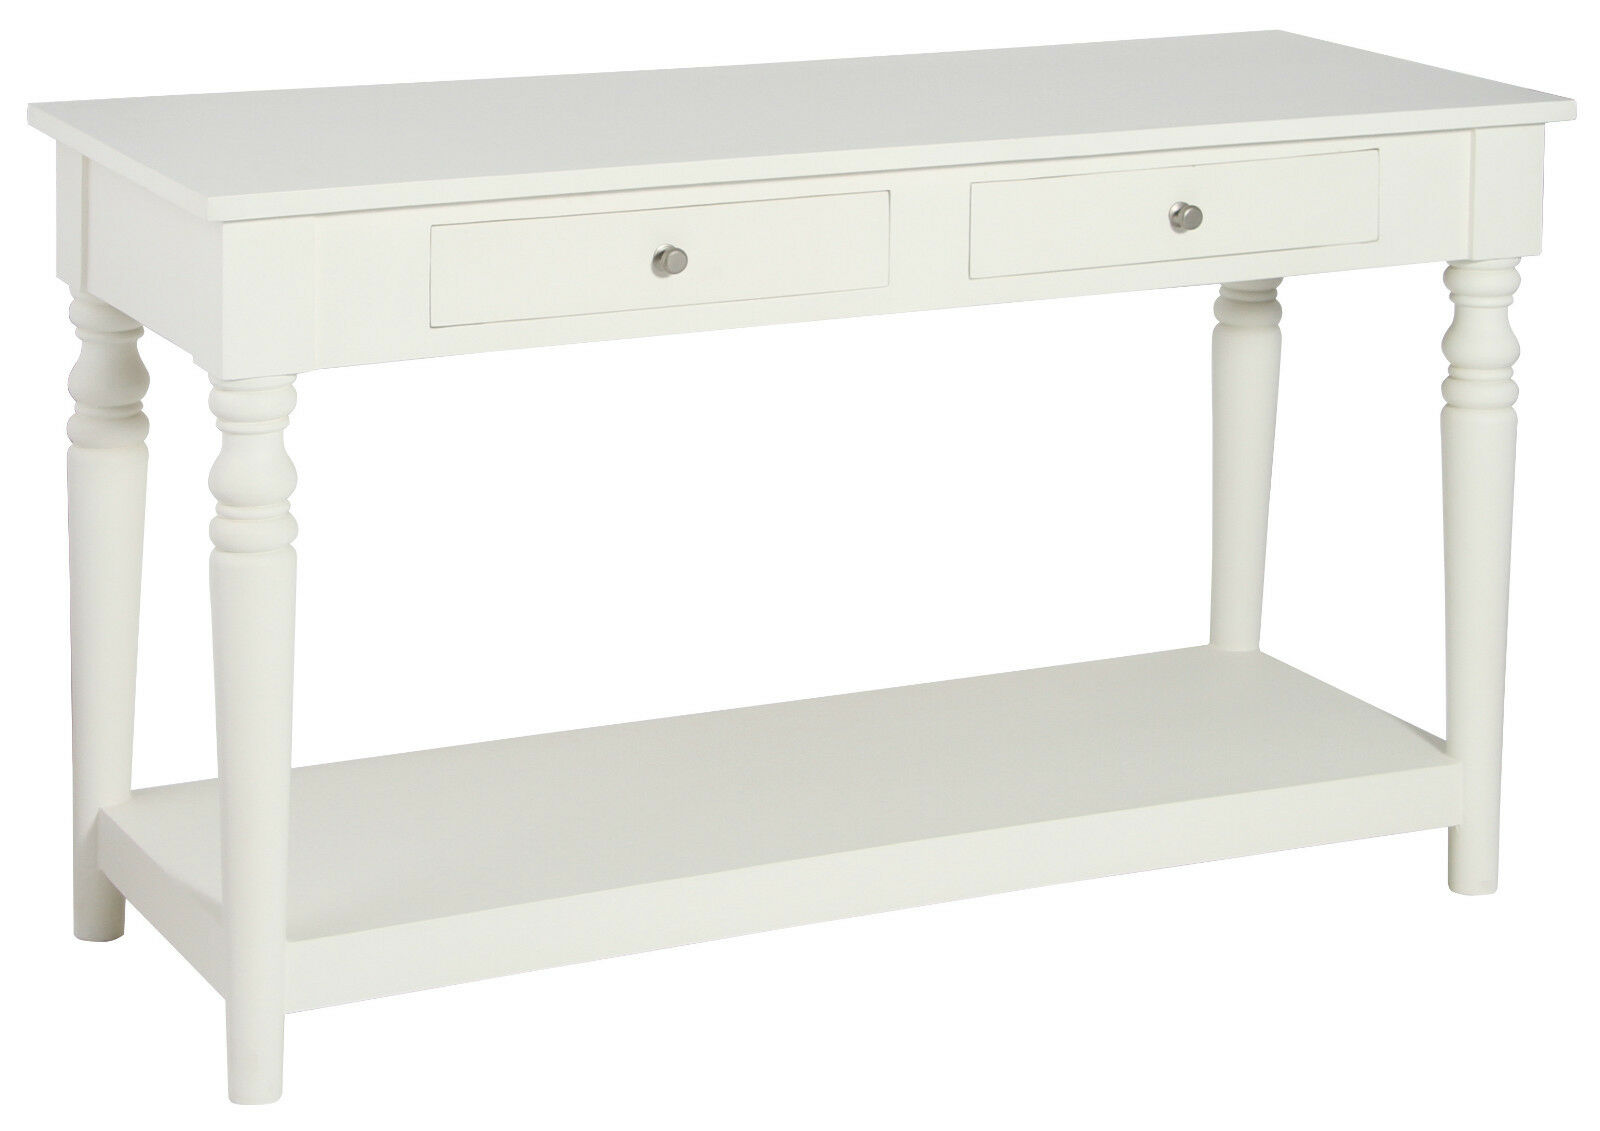 Pacific Lifestyle Antique White Mango Wood Shelved Console Table Ebay